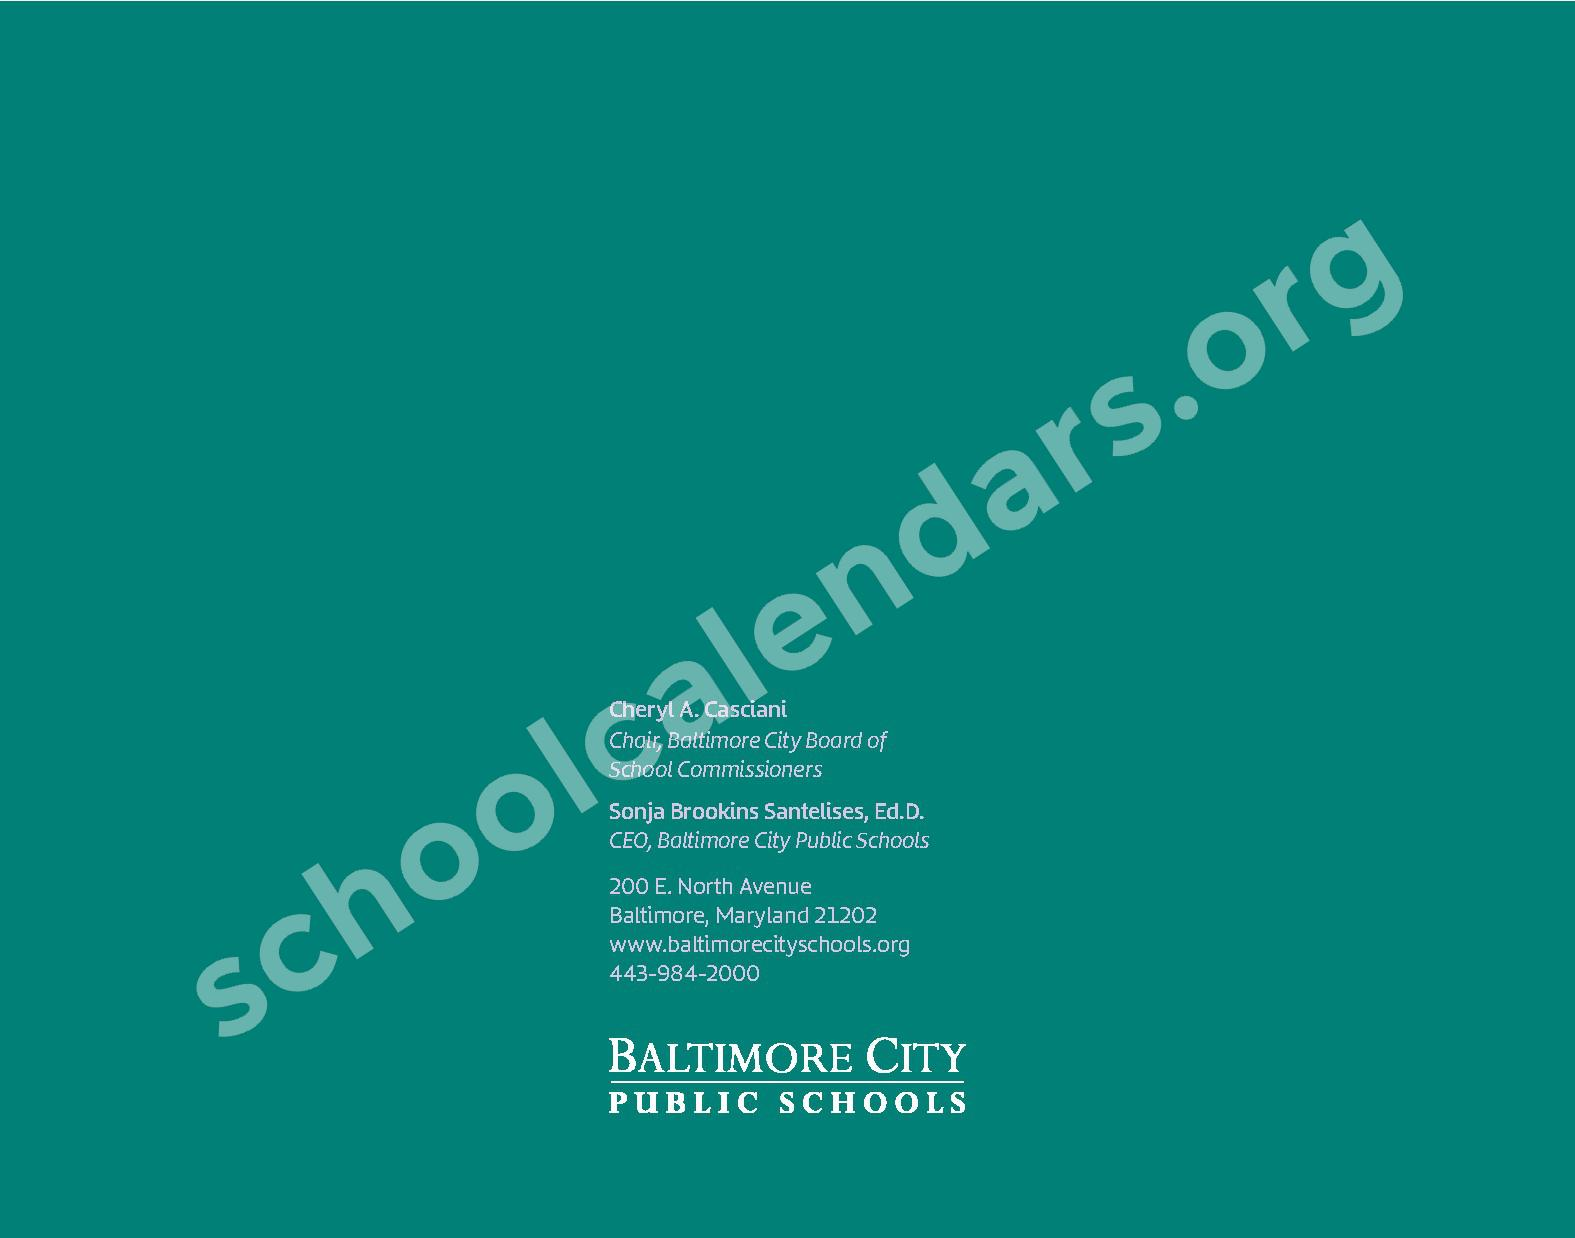 2018 - 2019 Calendario Escolar – Claremont School – page 16